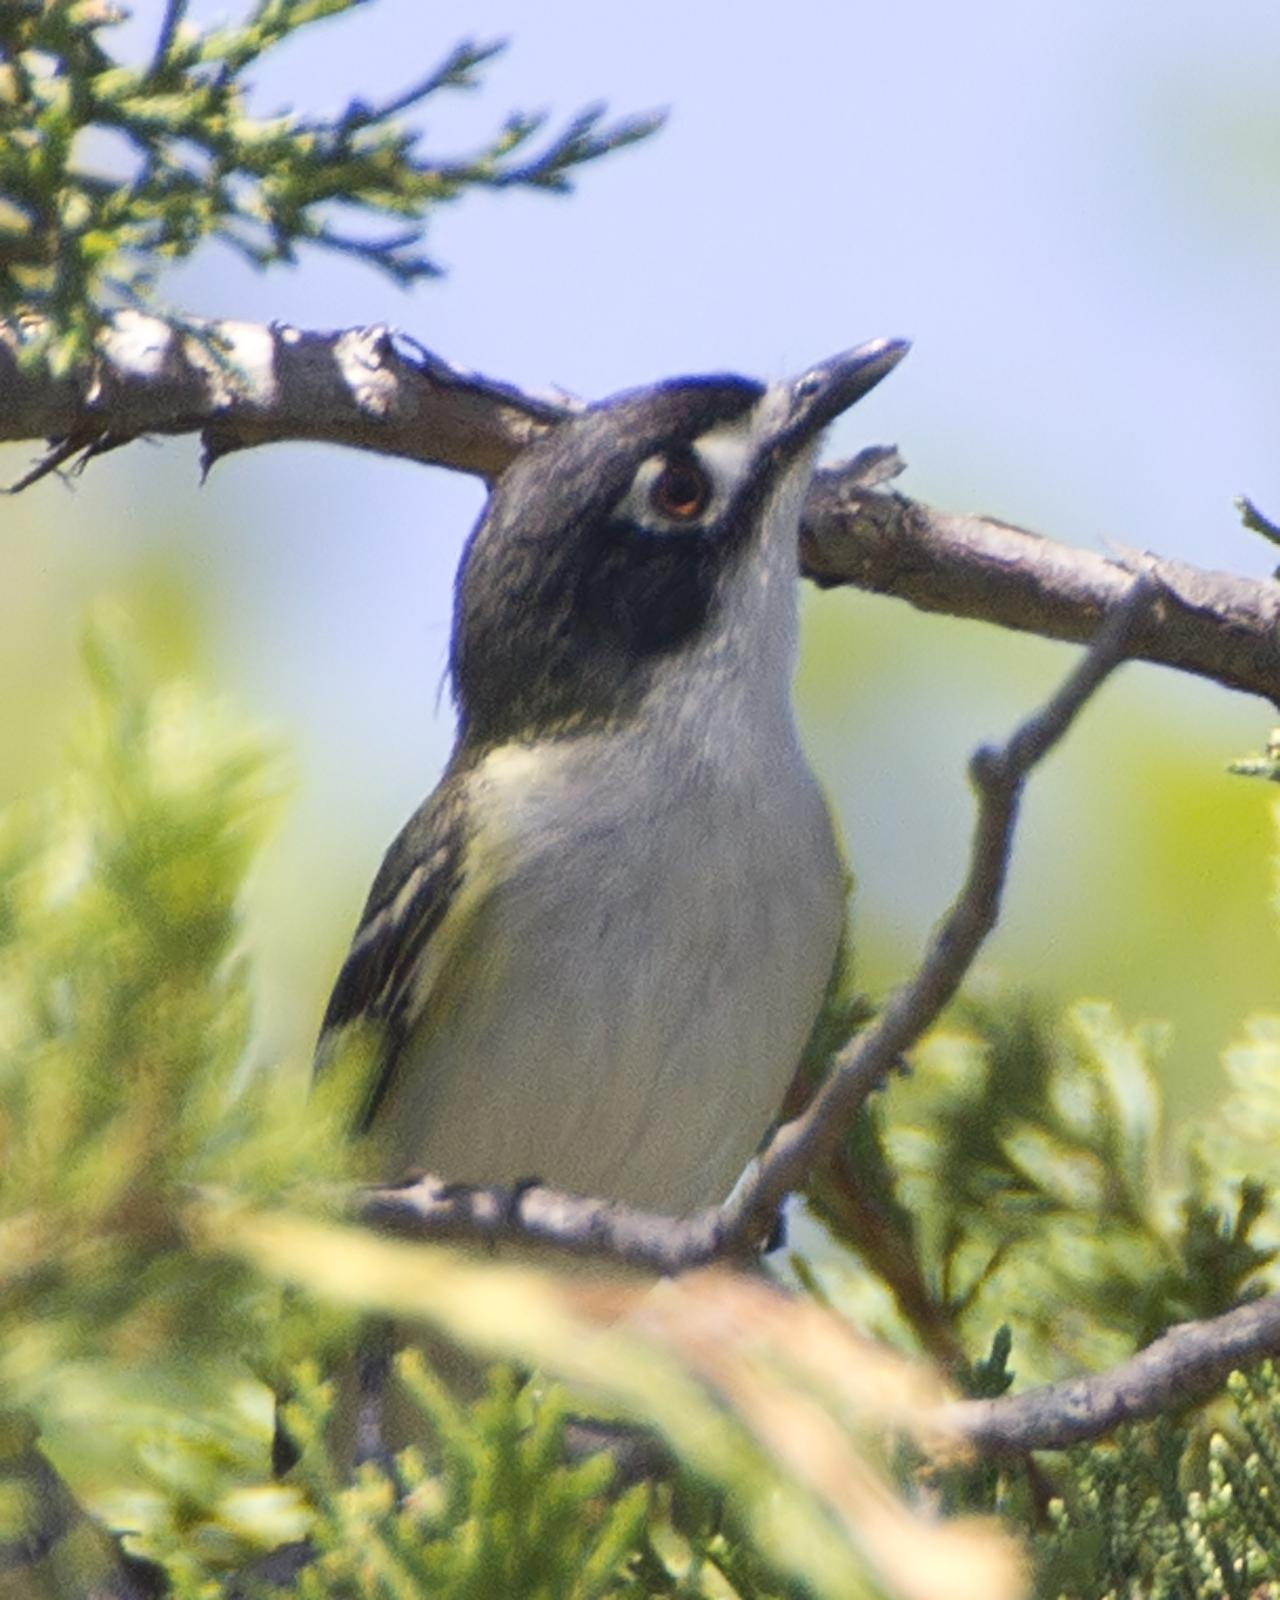 Black-capped Vireo Photo by Bill Adams